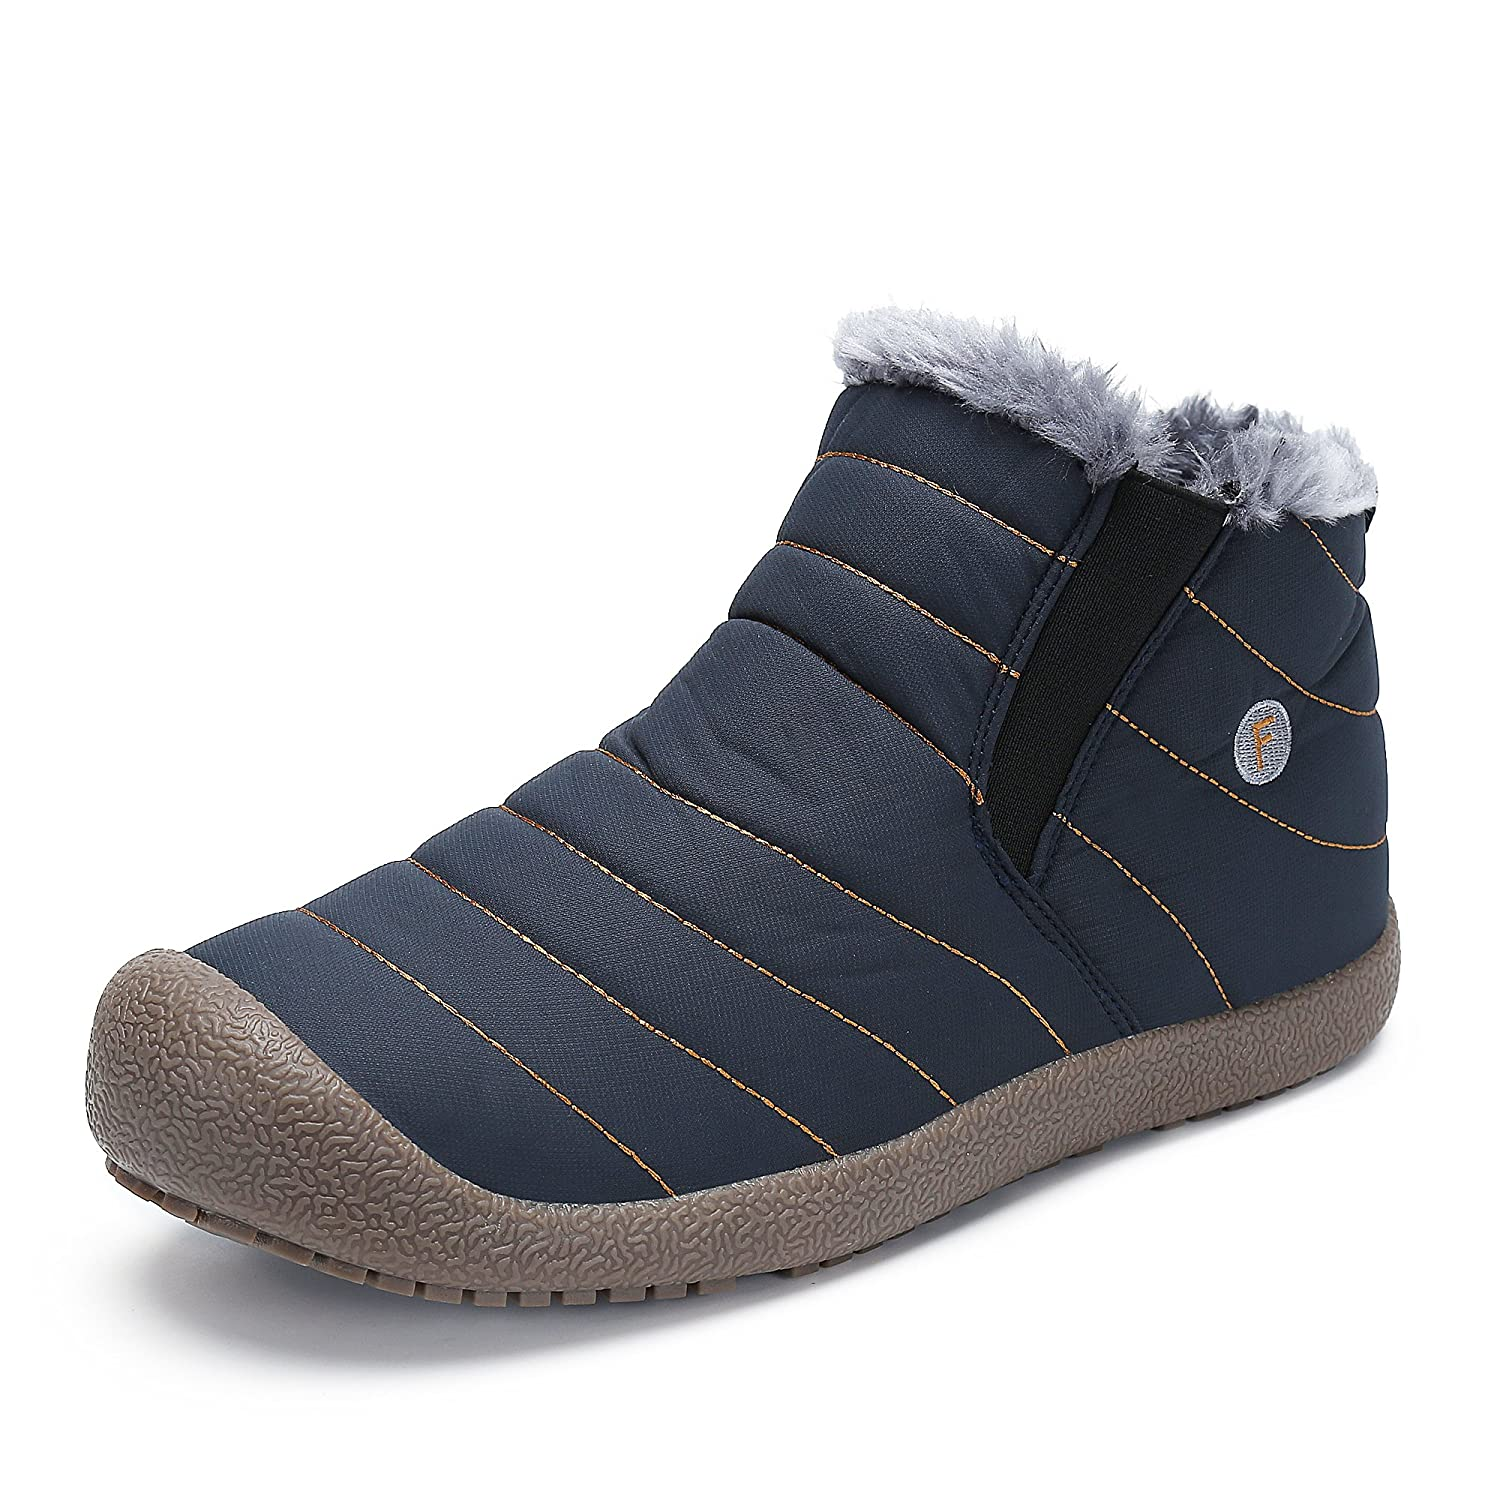 Men's Fashion Ankle Bootie Womens Fully Fur Winter Snow Boots Warm Sneaker Shoes Cold-Weather